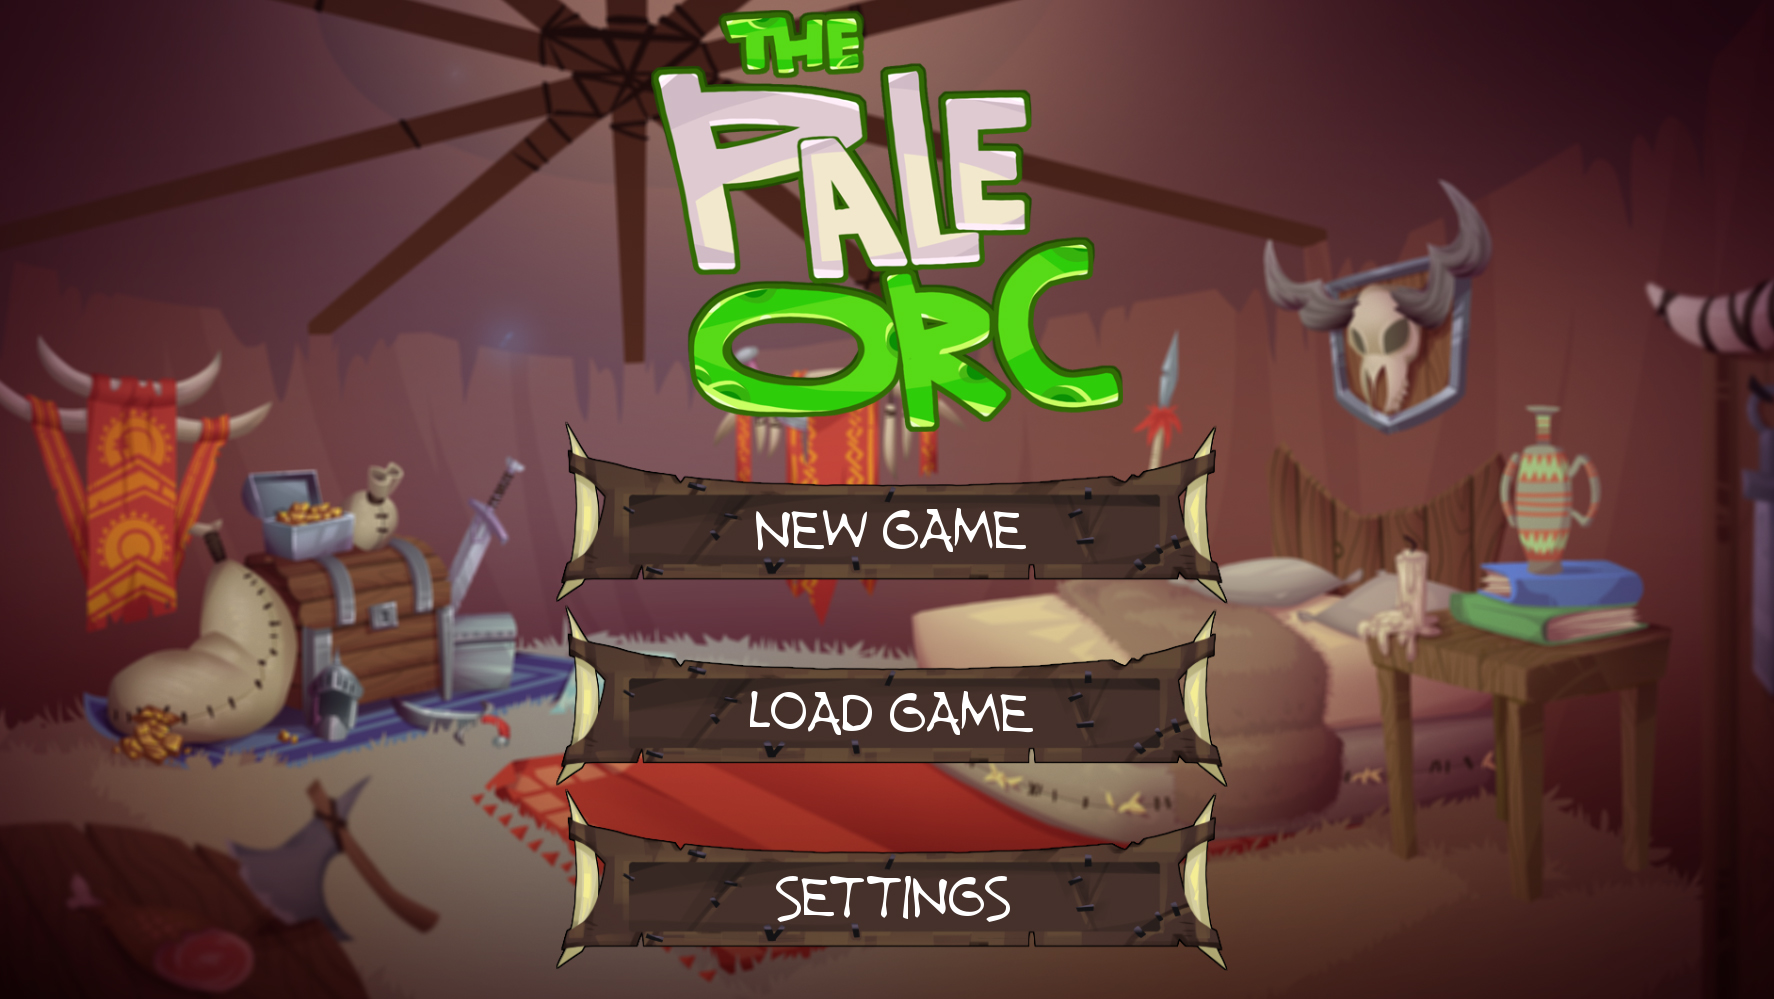 The Pale Orc screenshot 1